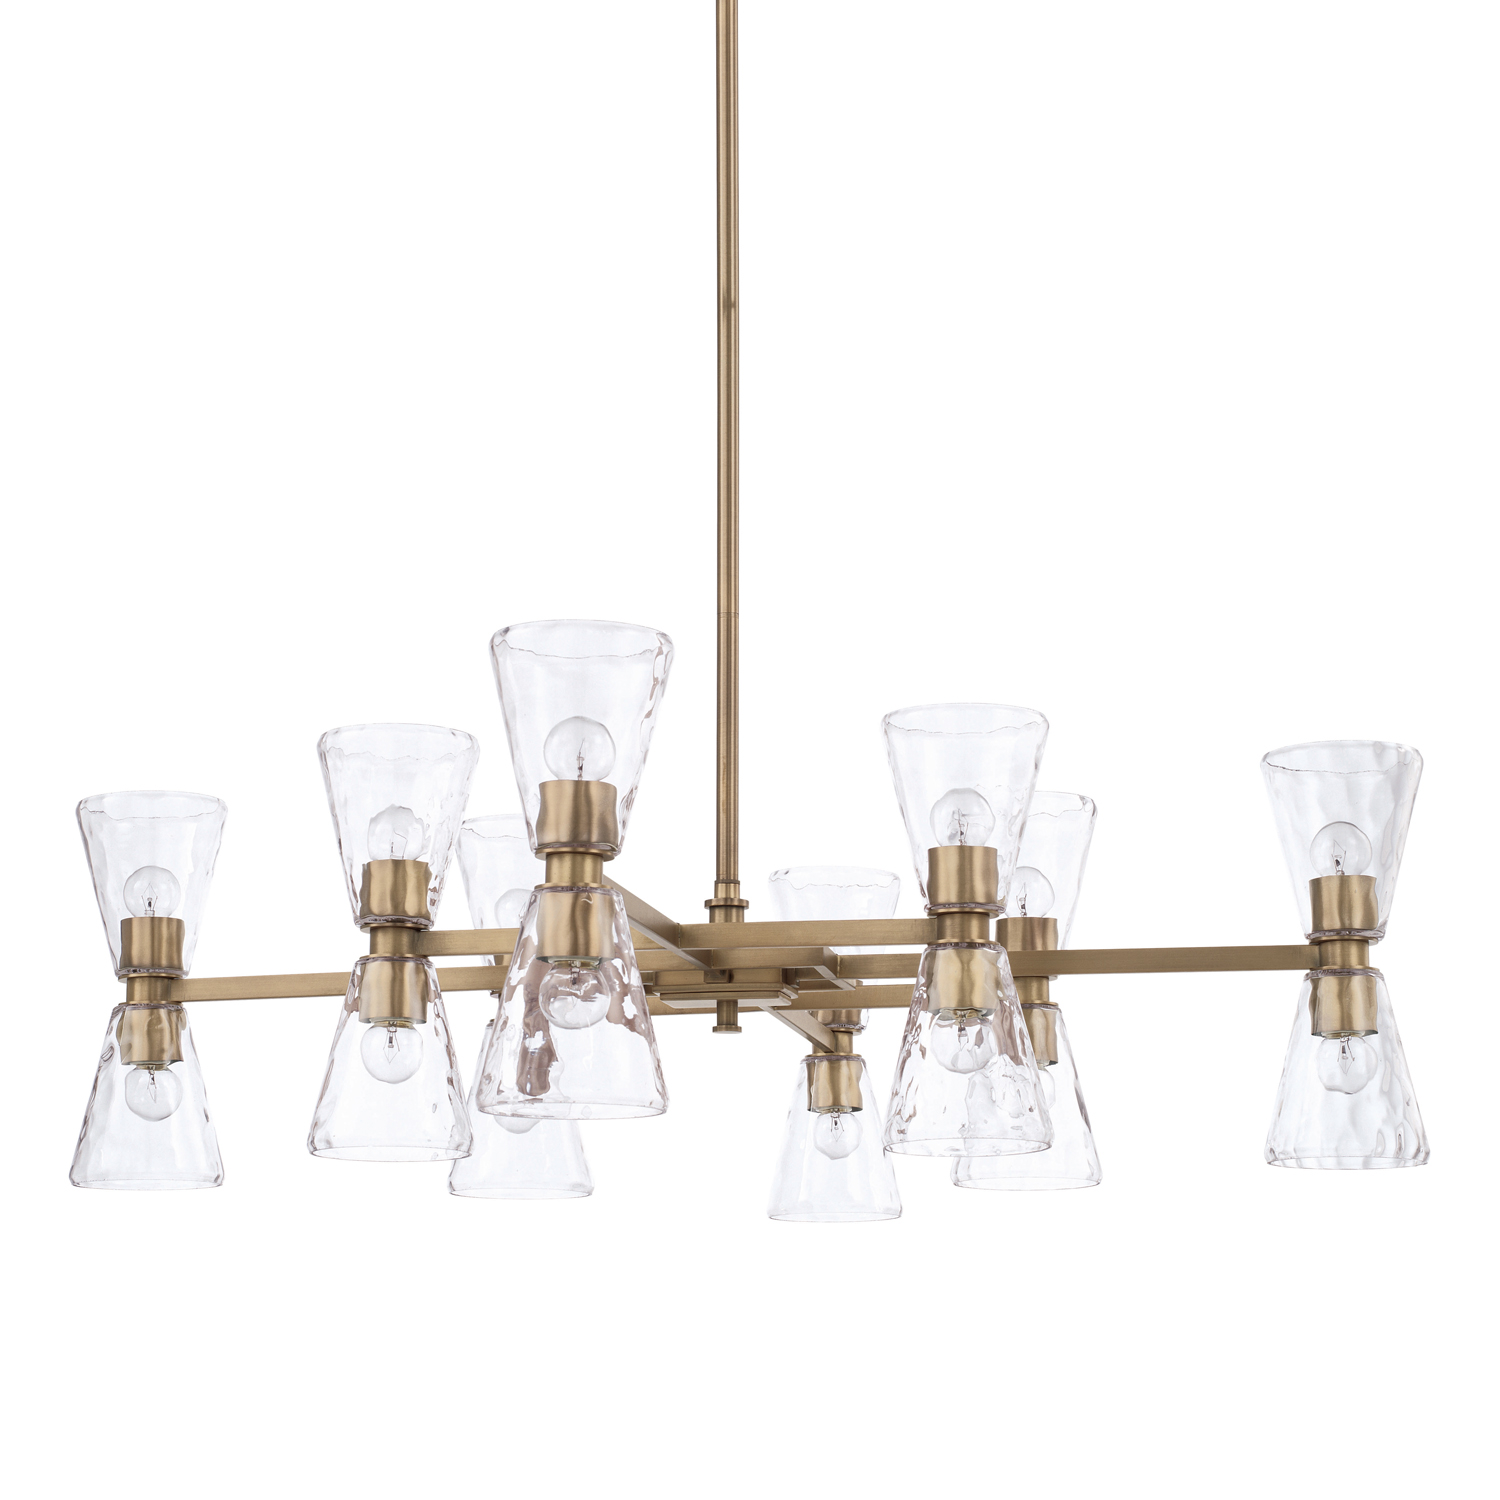 16 Light Chandelier from the Lyra collection by Capital Lighting 427501AD 456